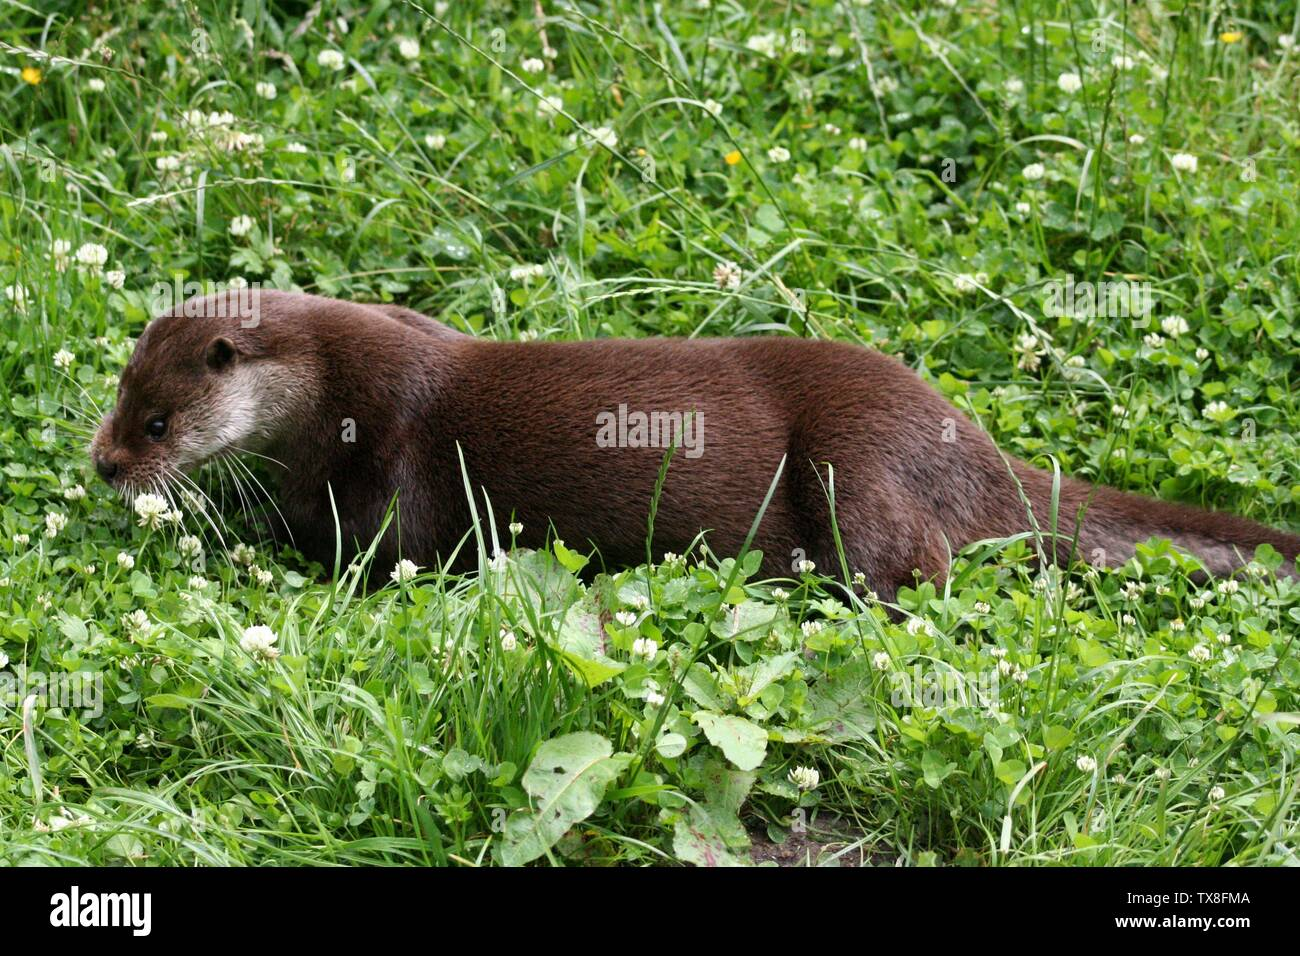 Eurasian otter (Lutra lutra) at the New Forest Otter, Owl and Wildlife Park (Hampshire, England).; 26 June 2007; Own work; Dave Pape; Stock Photo